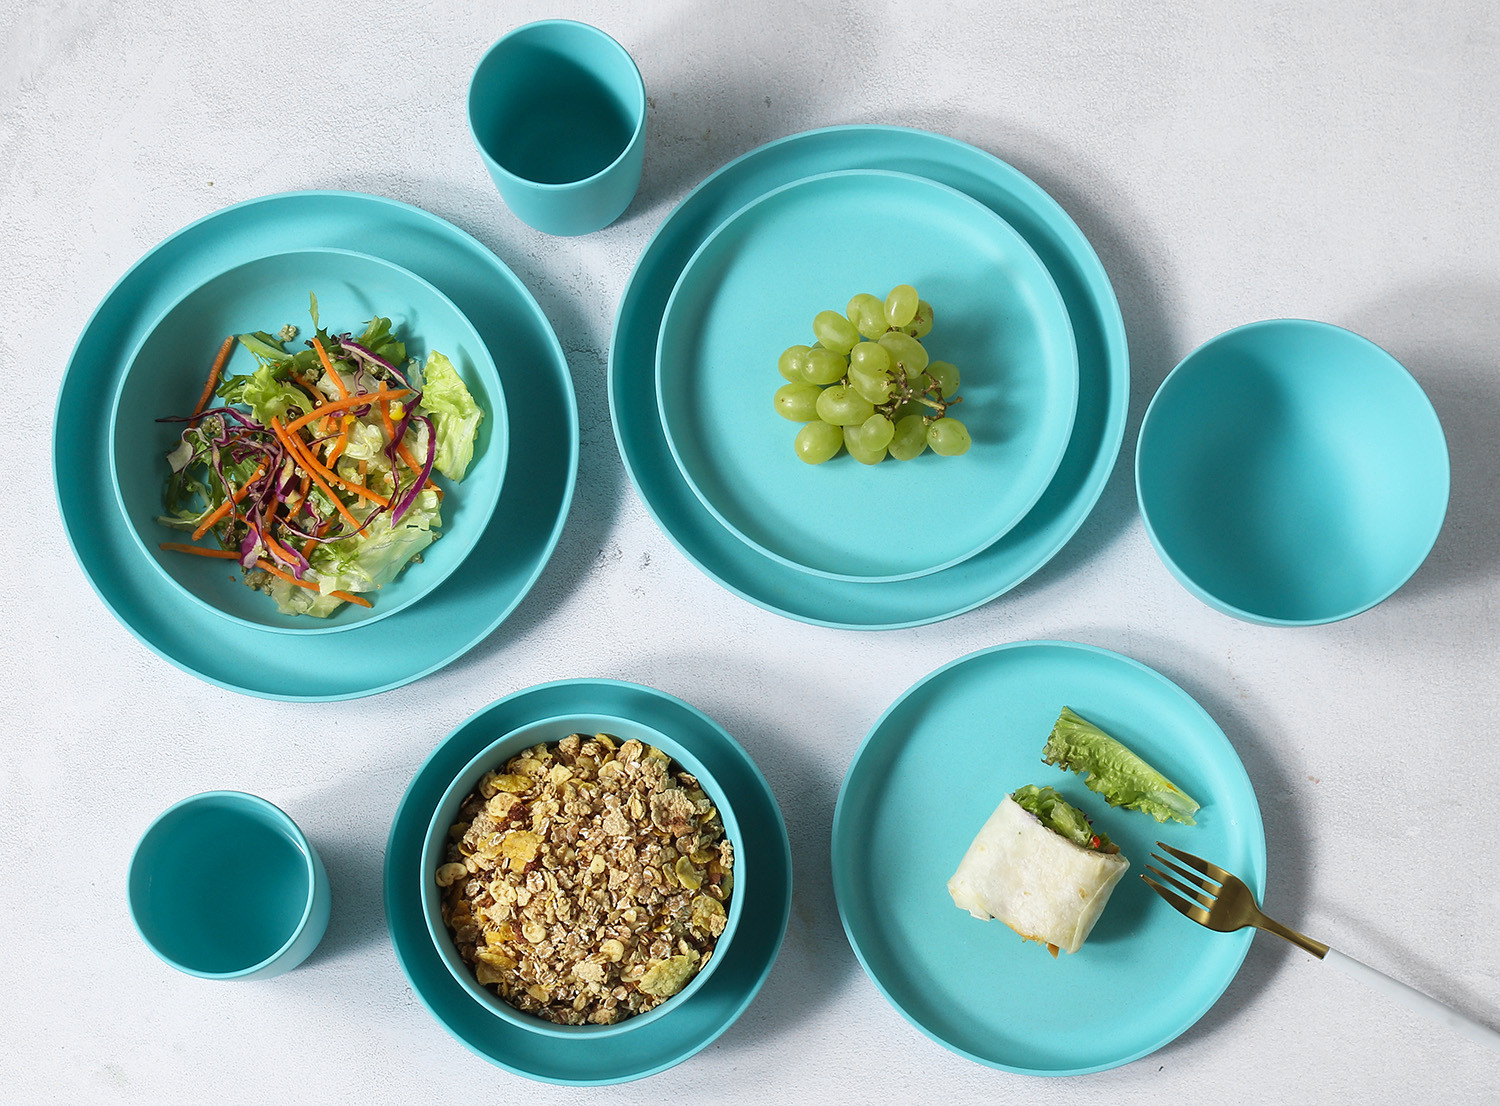 Lekoch tableware products for drop shipping